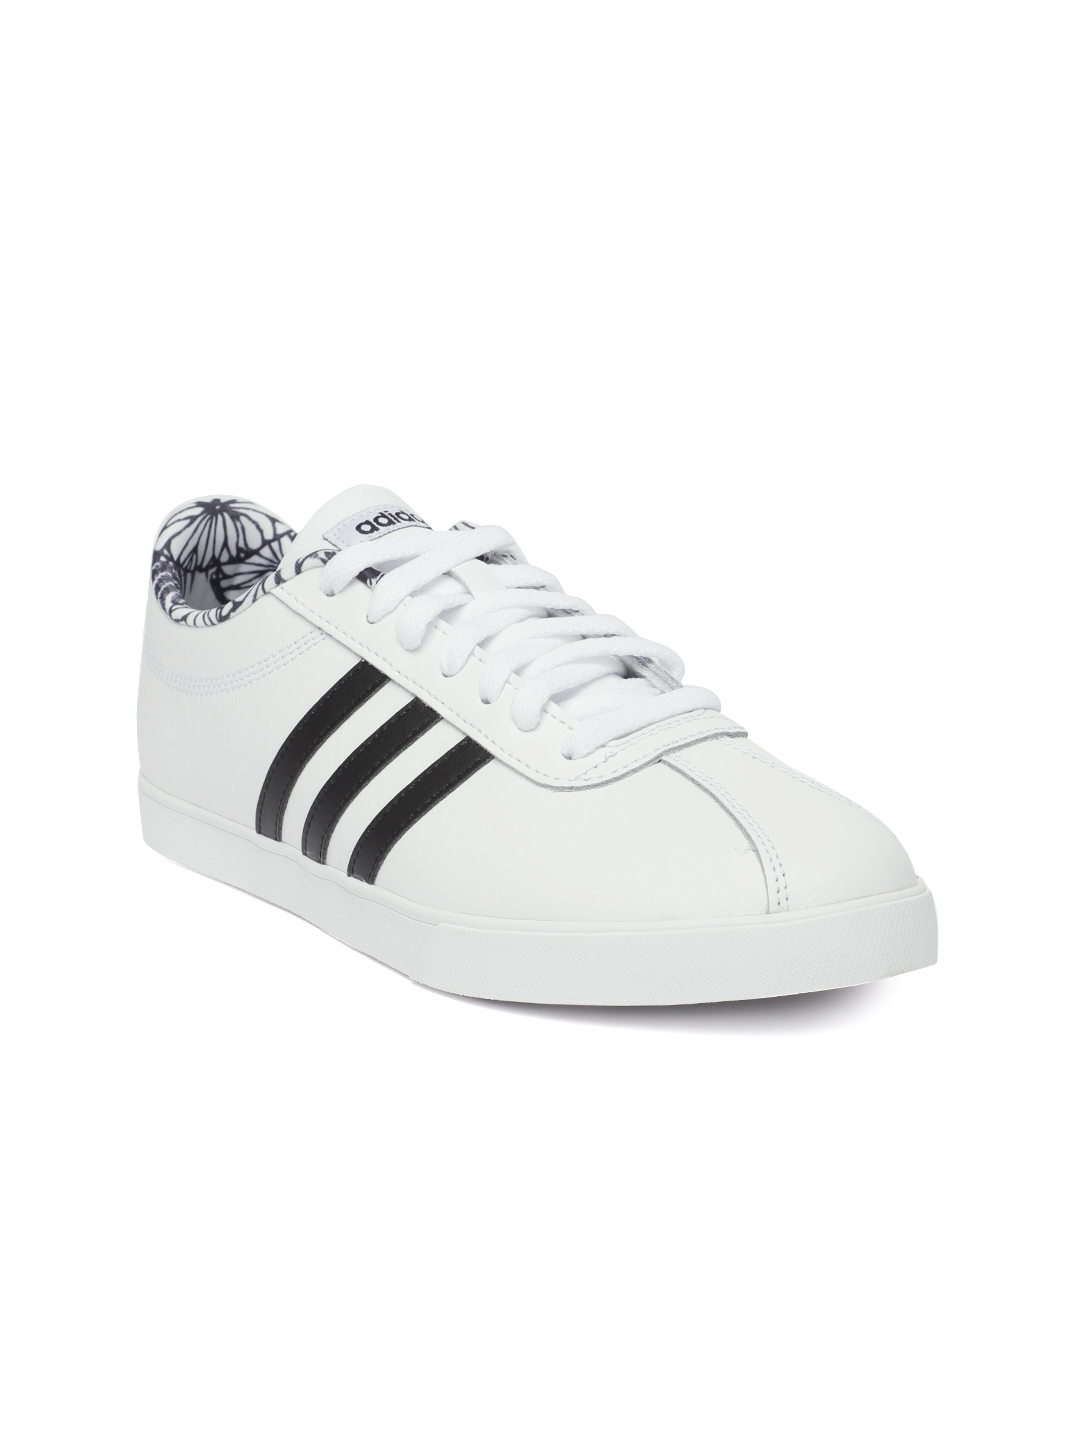 buy popular 460c8 17334 ... cheap adidas women white courtset leather tennis shoes 2b411 ccba6